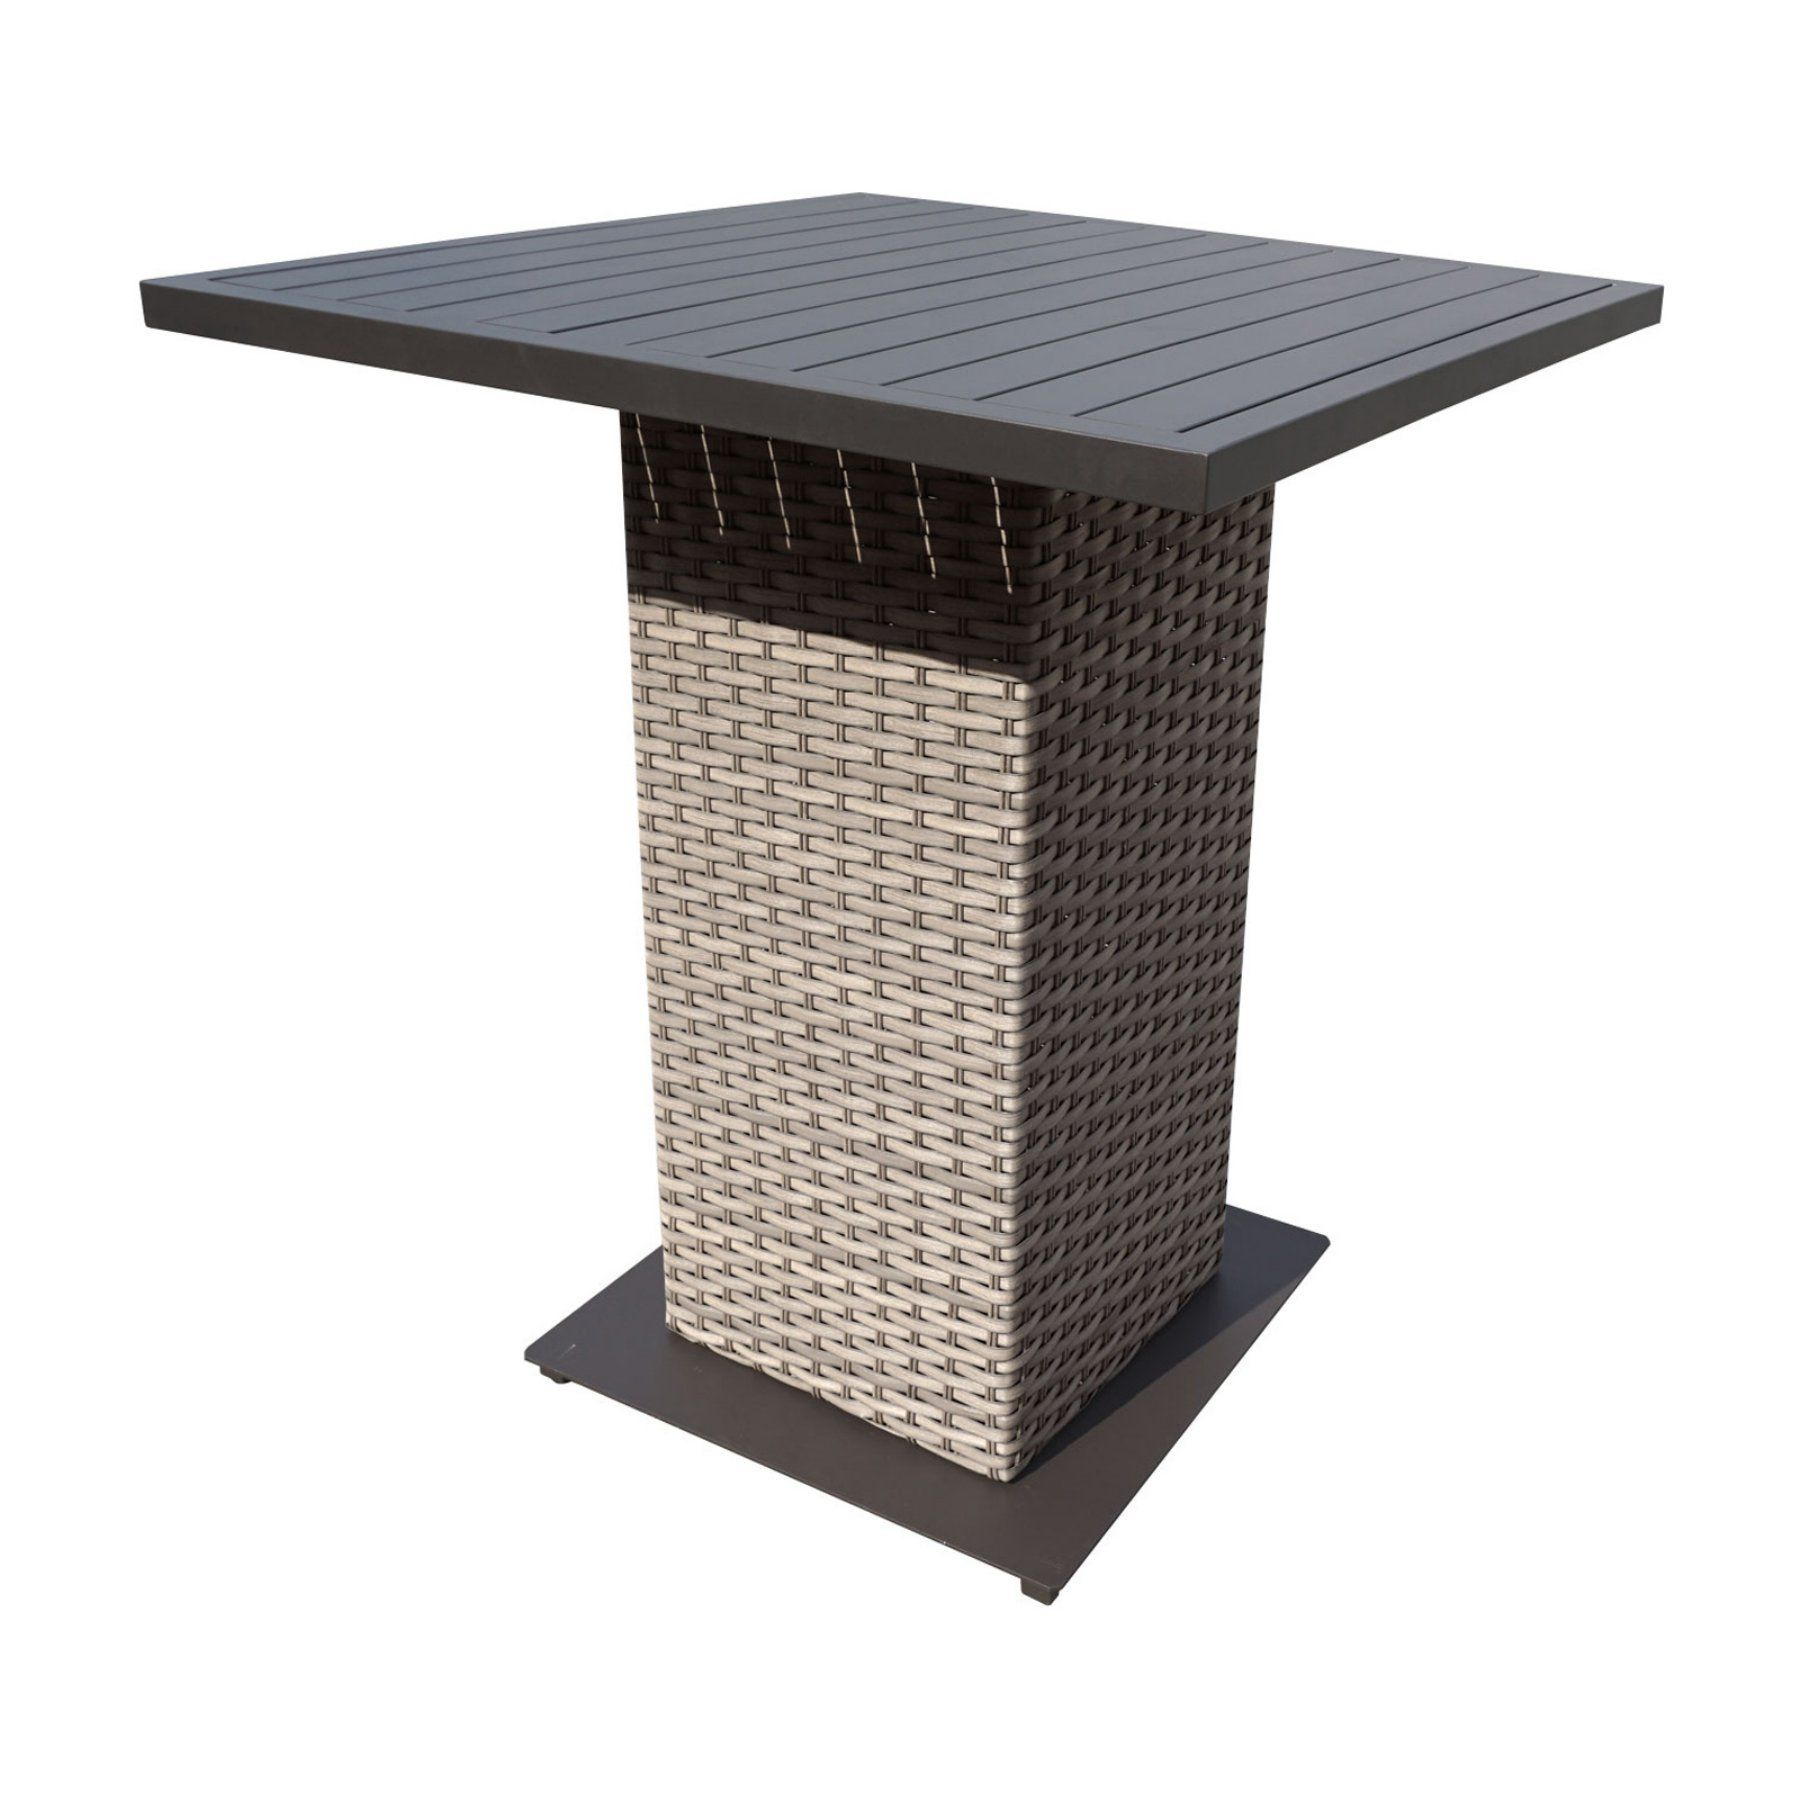 Tk Classics Monterey Square Wicker Bar Height Patio Dining Table In